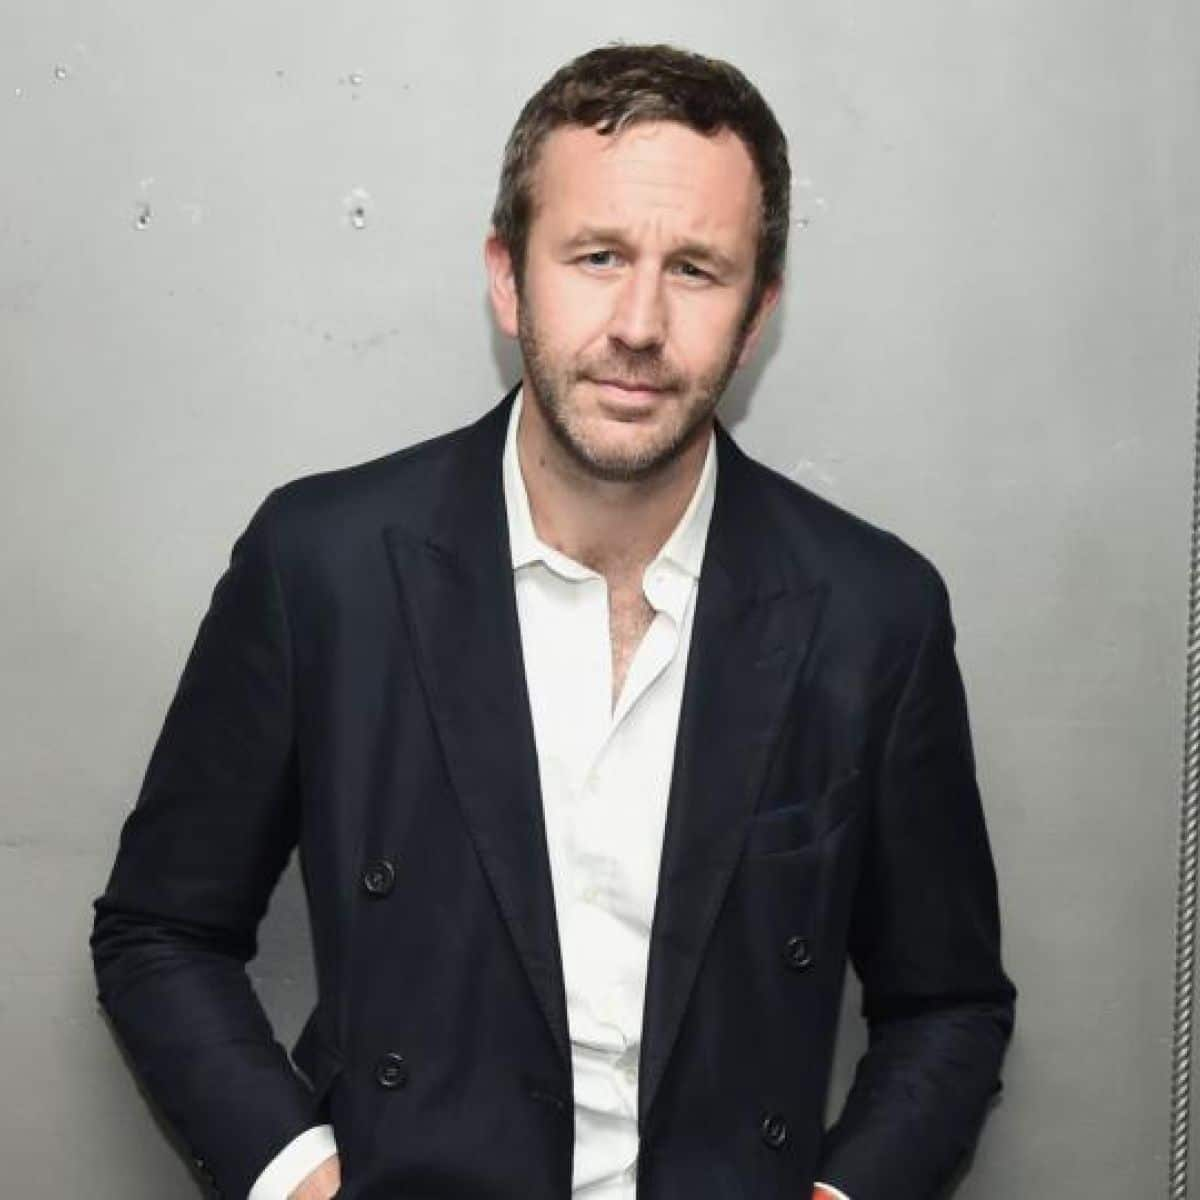 Chris O'Dowd Irish Actor, Comedian, Director, Screenwriter